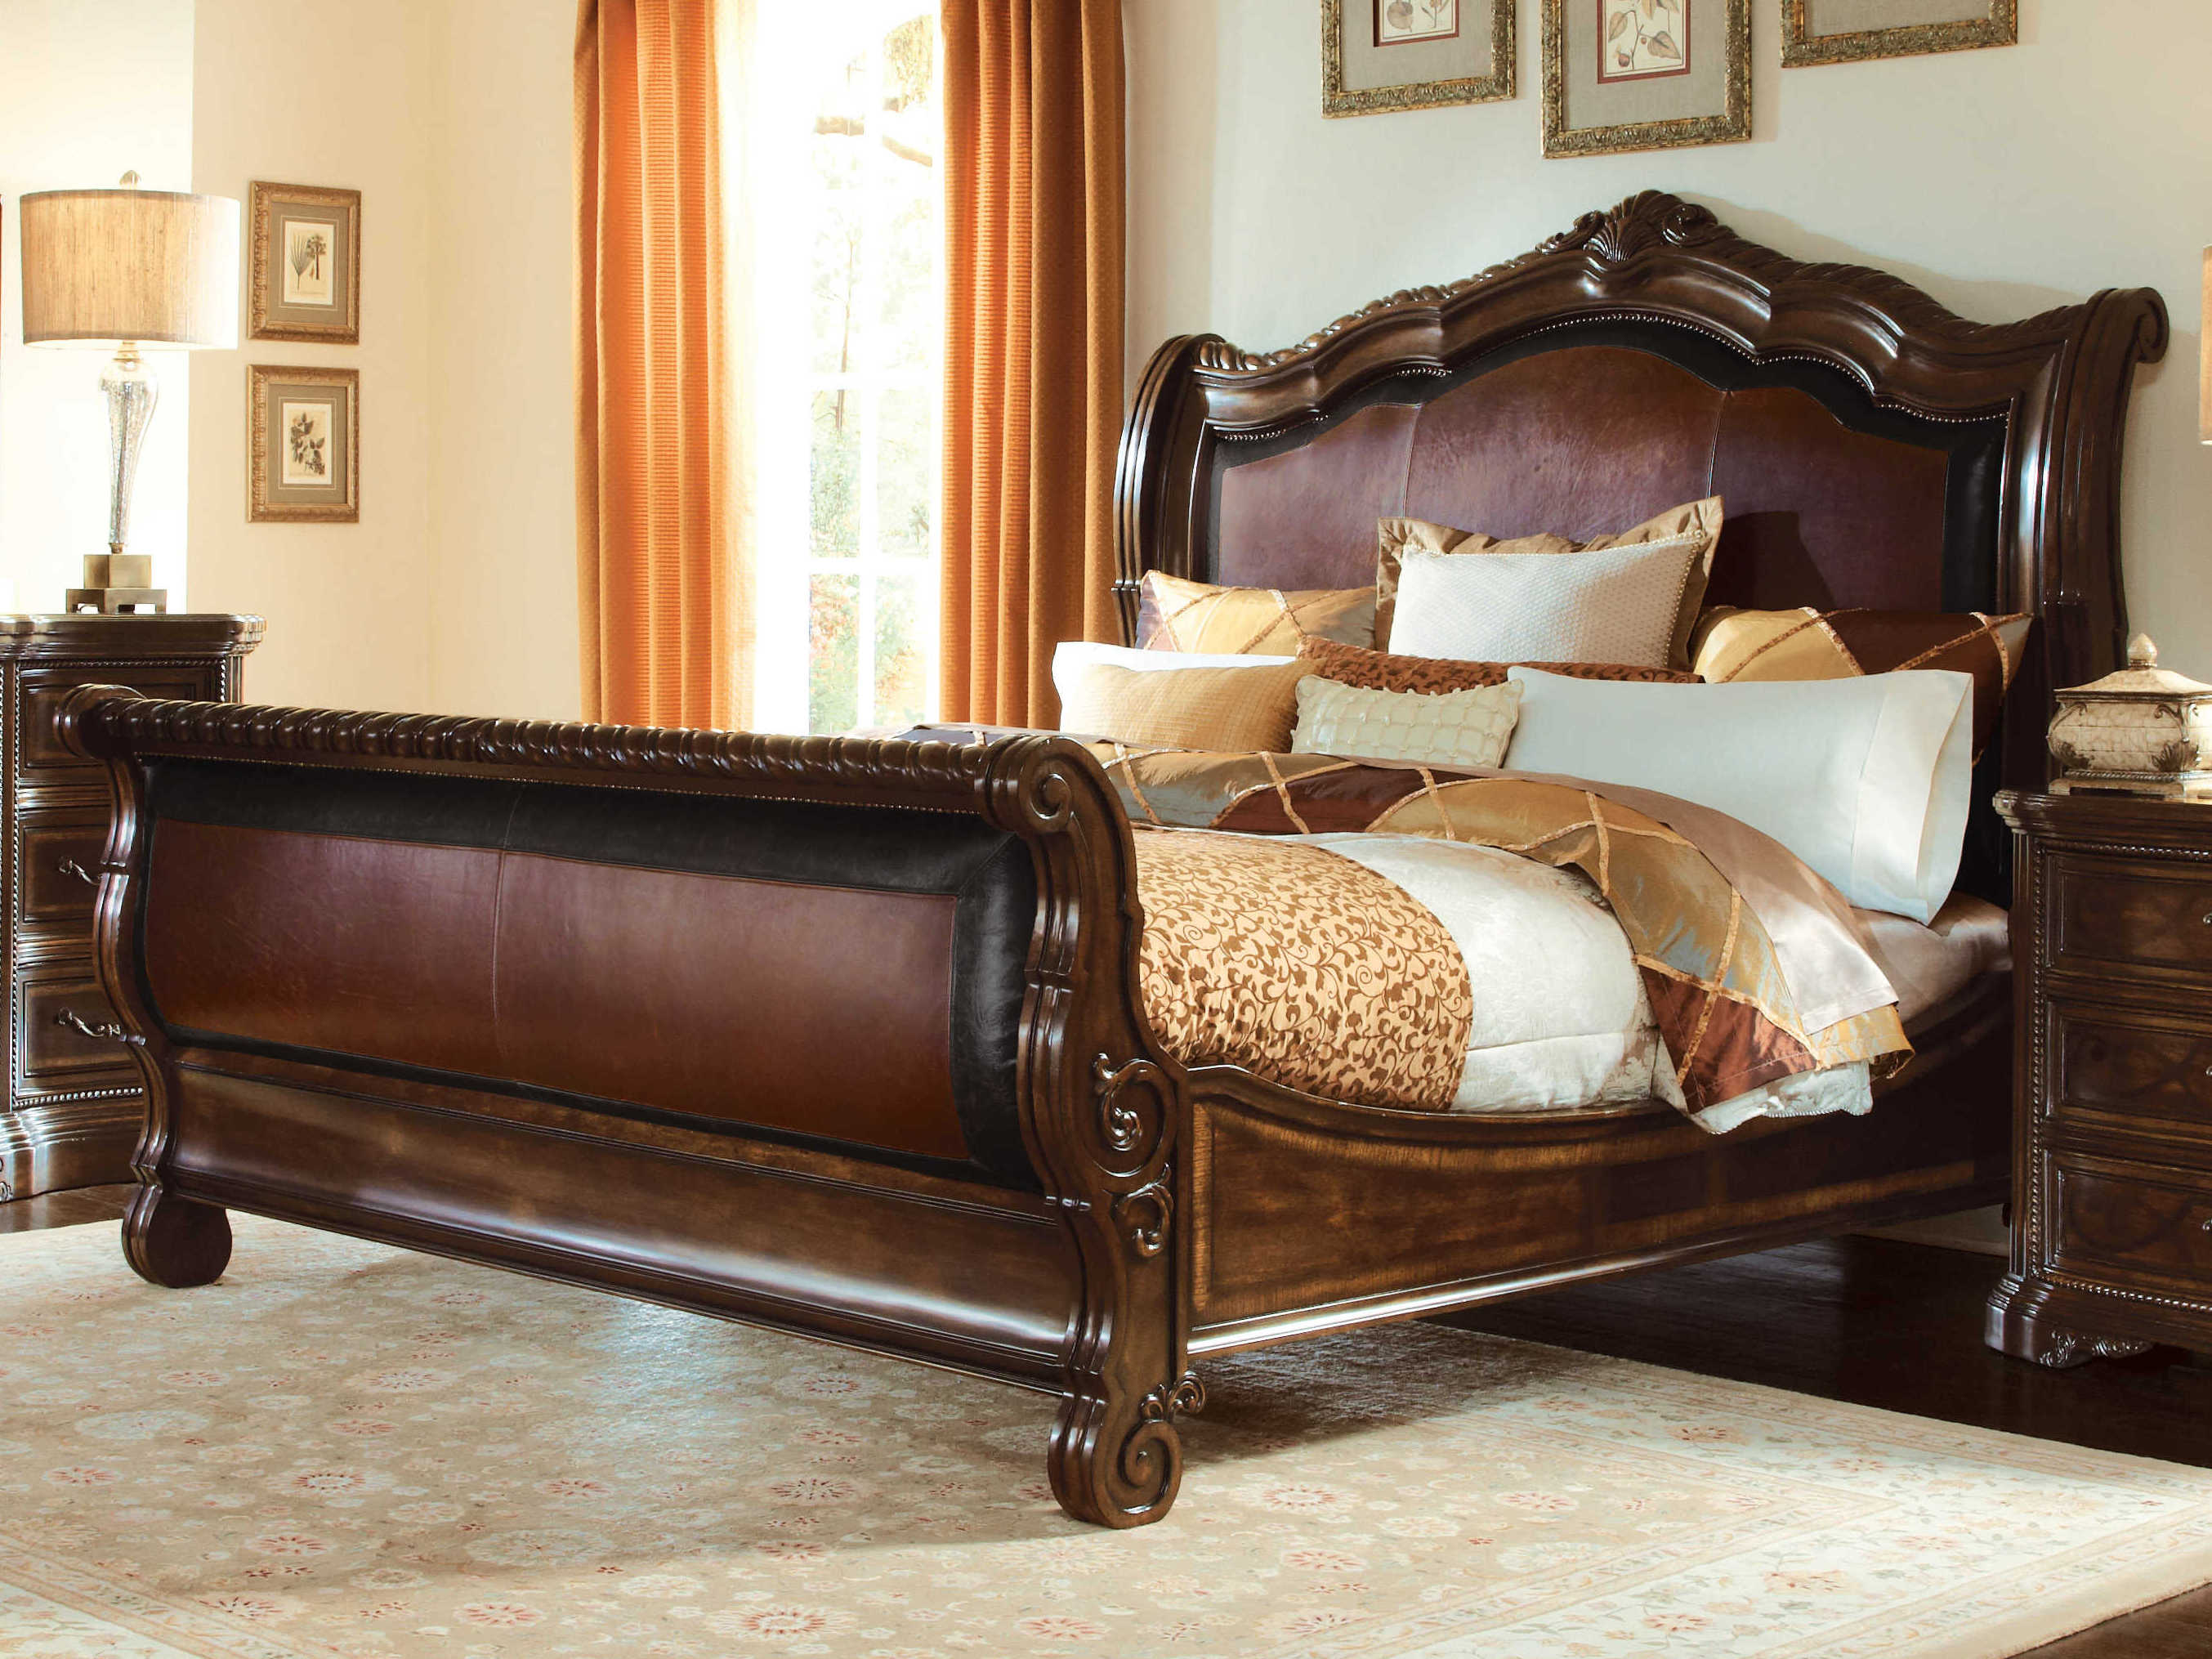 ART Furniture Valencia Dark Oak Sleigh Bedroom Set Hover To Zoom View